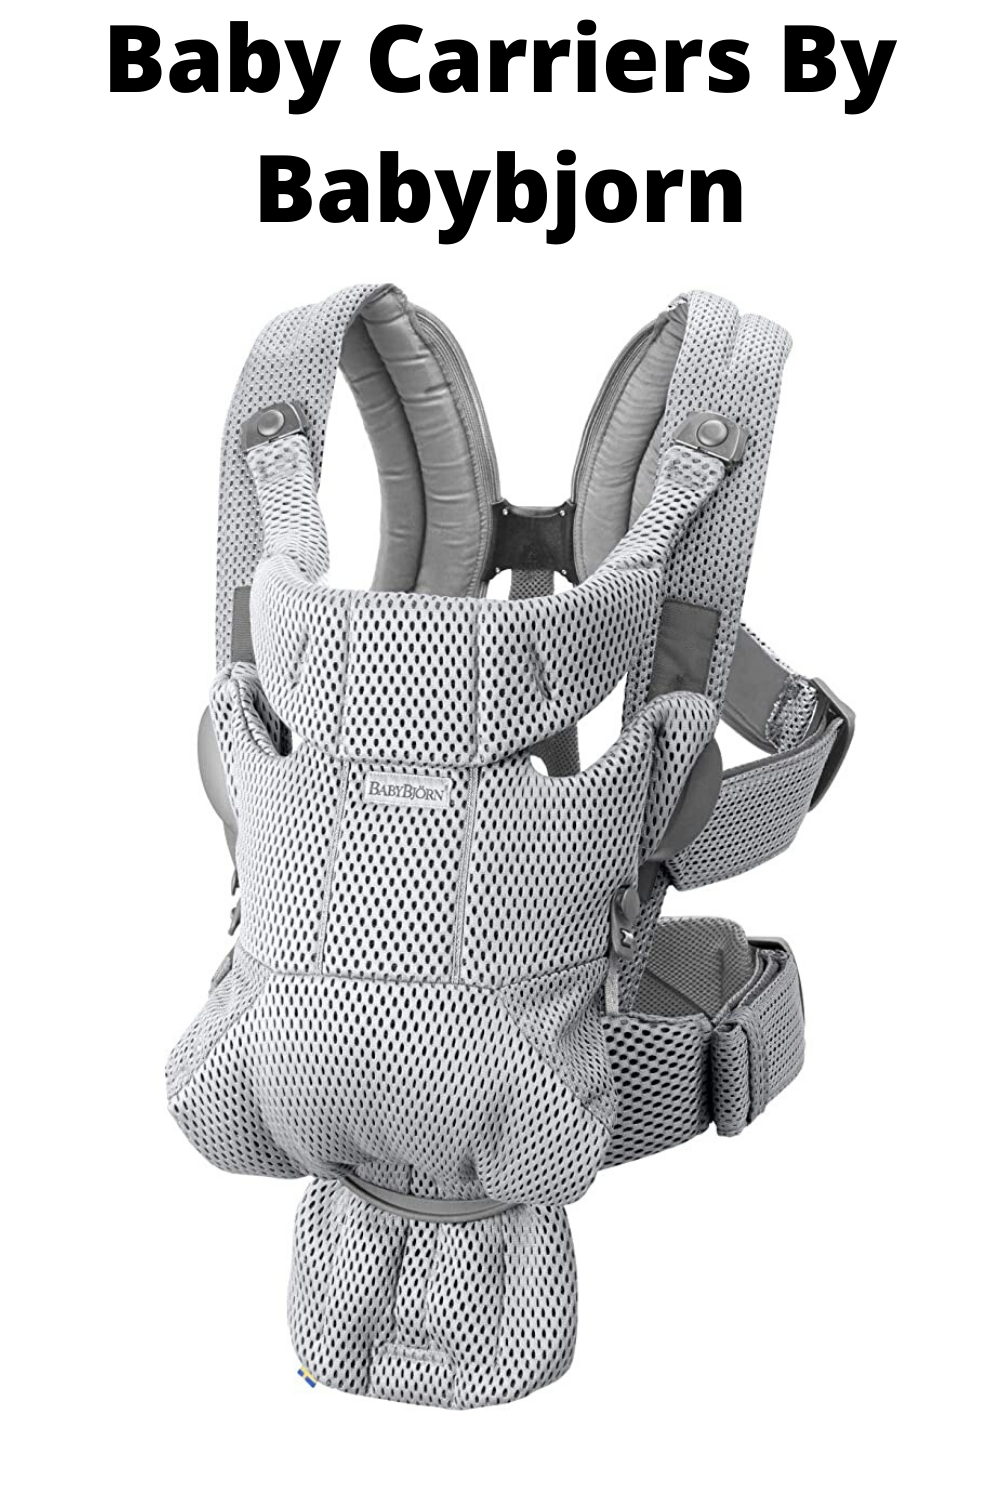 Babybjorn Baby Carrier Free In 2020 Baby Carrier Baby Bjorn Baby Bjorn Carrier